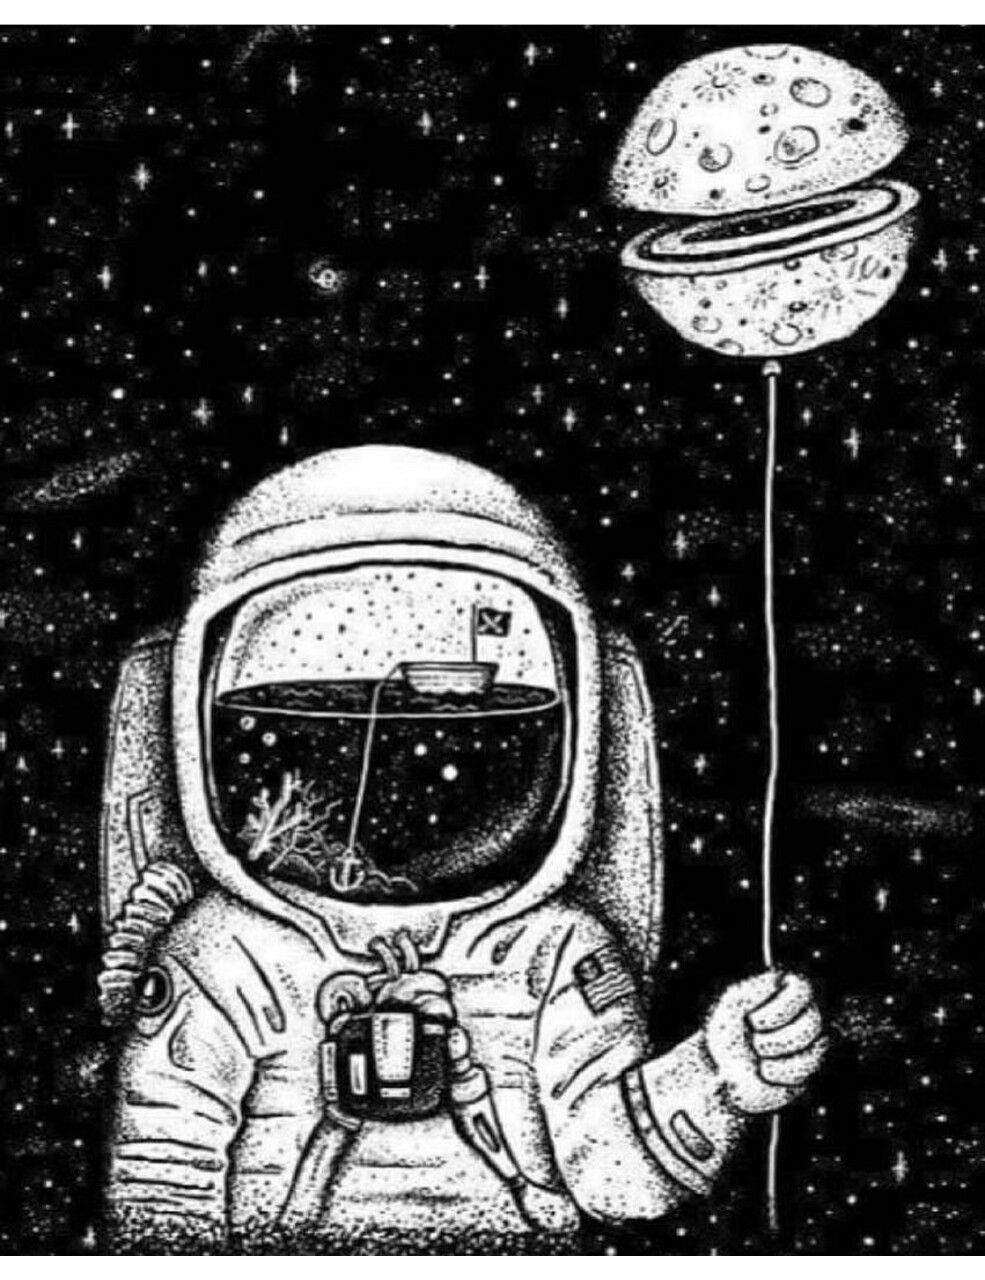 Trippy Outer Space Background Jllsly Astronaut Art